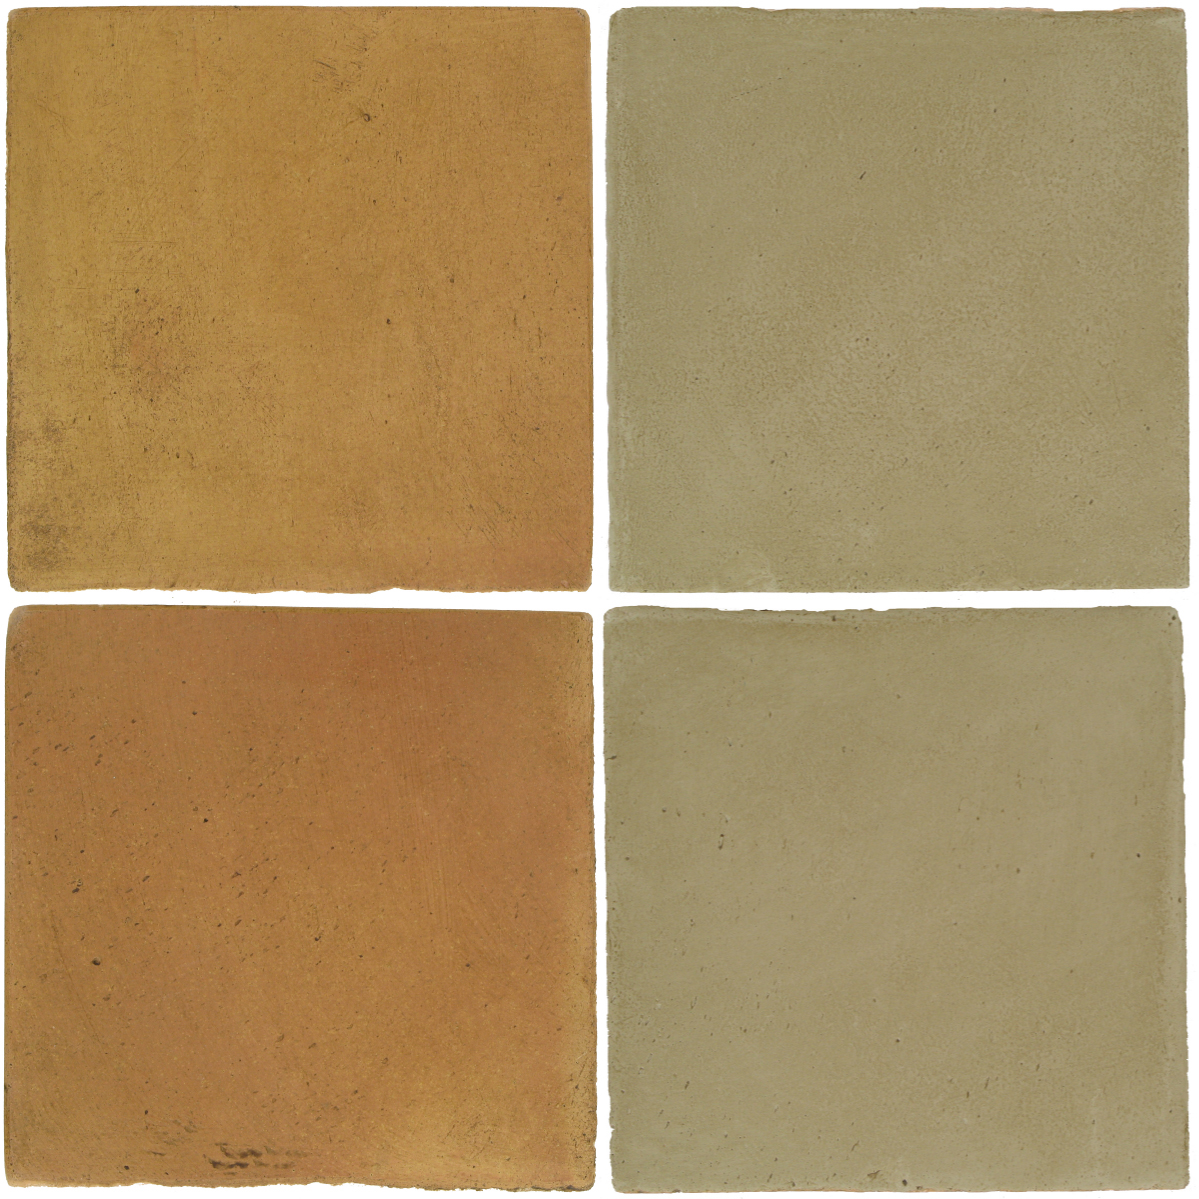 Pedralbes Antique Terracotta  2 Color Combinations  OHS-PSSW Siena Wheat + OHS-PGDW Dirty W.